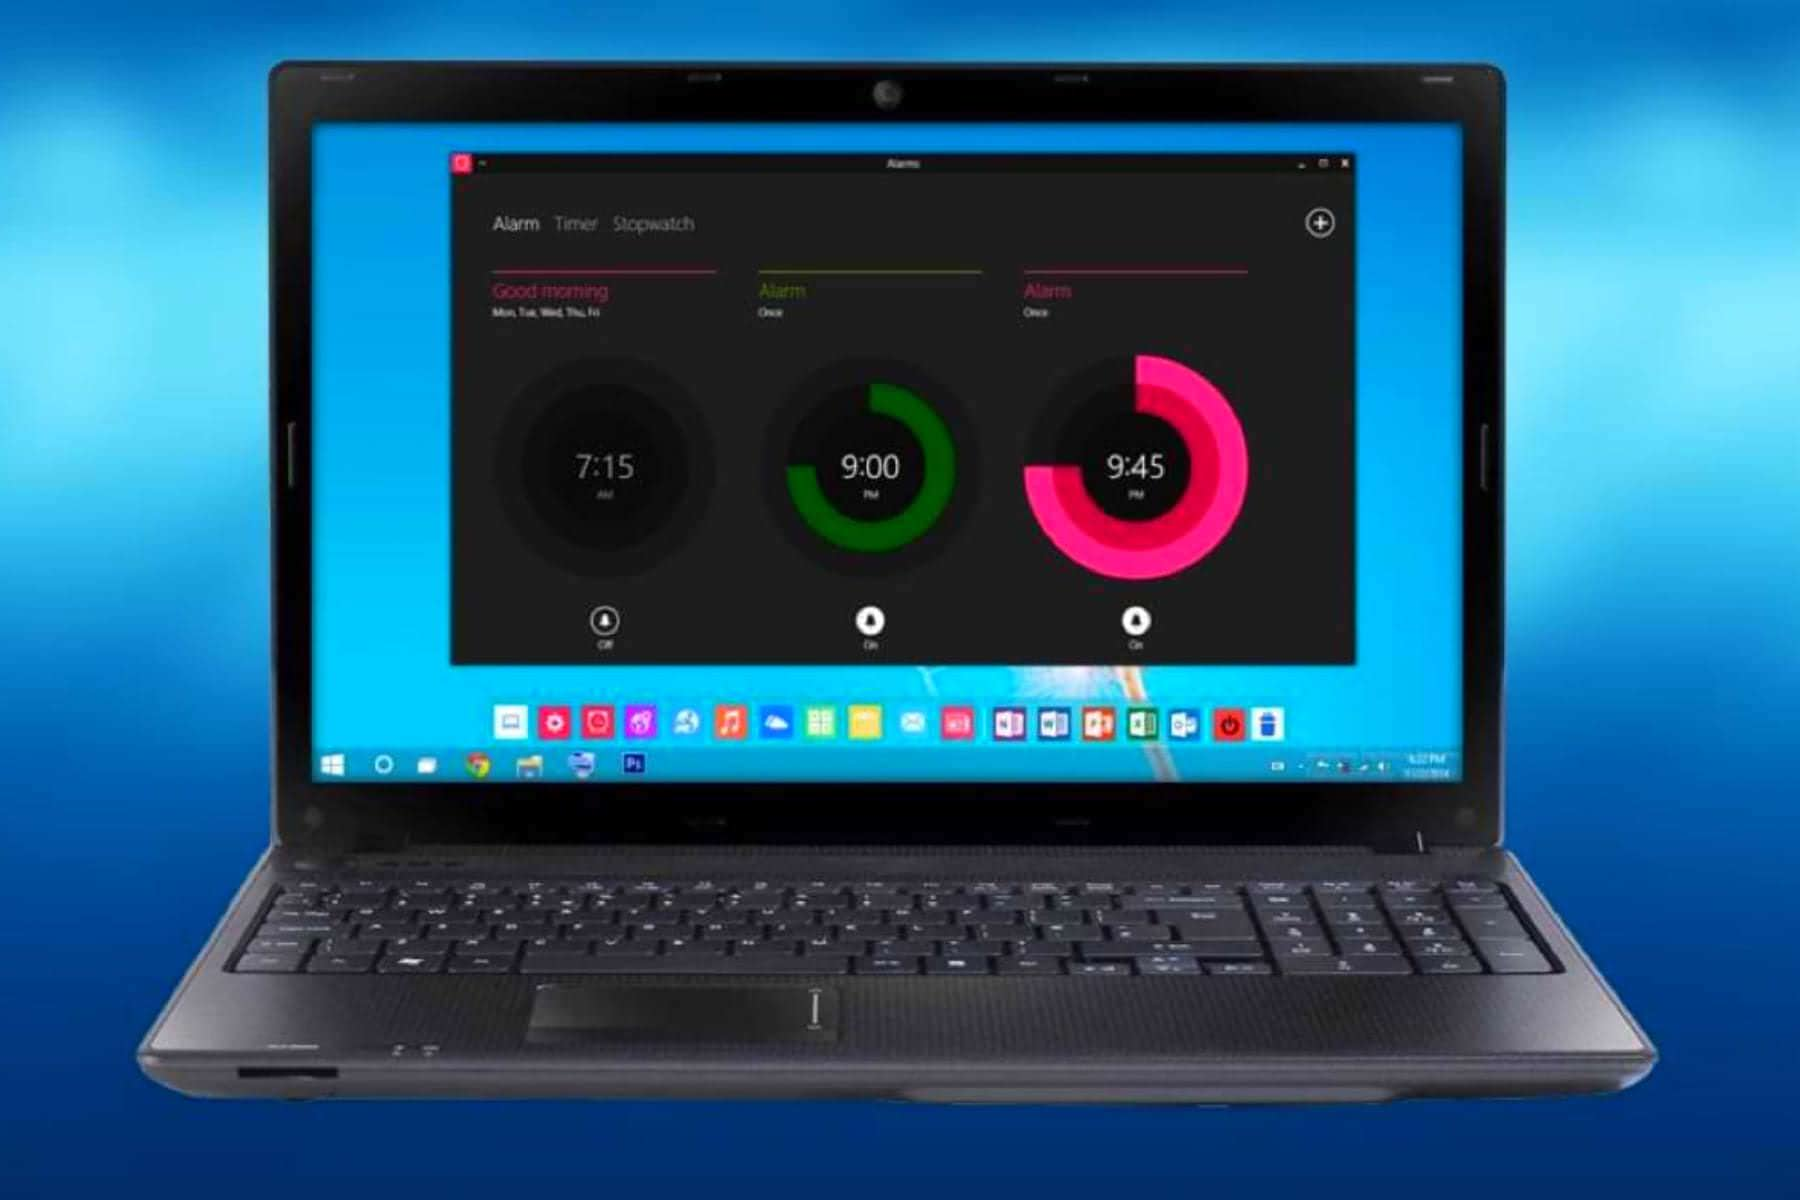 Download free Windows 11 with license | Hot Tech News